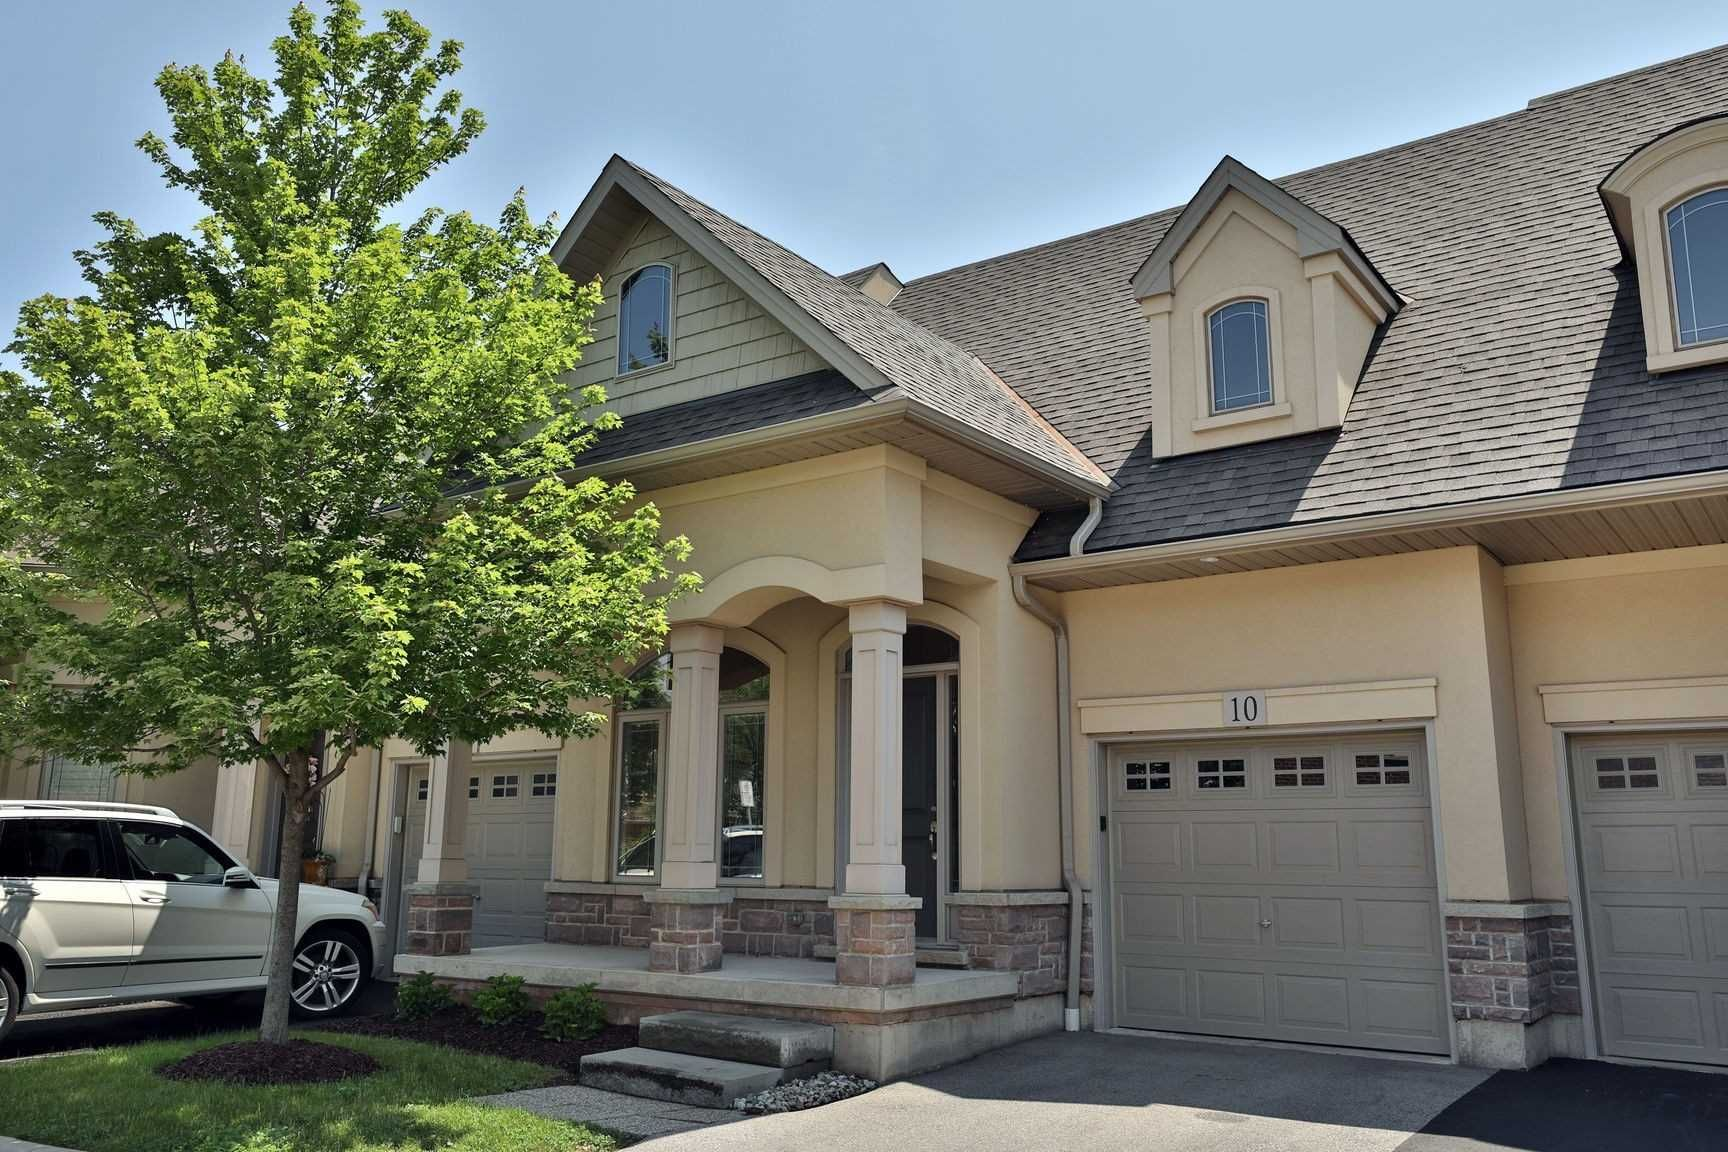 5056 New St, unit 10 for sale in Toronto - image #1